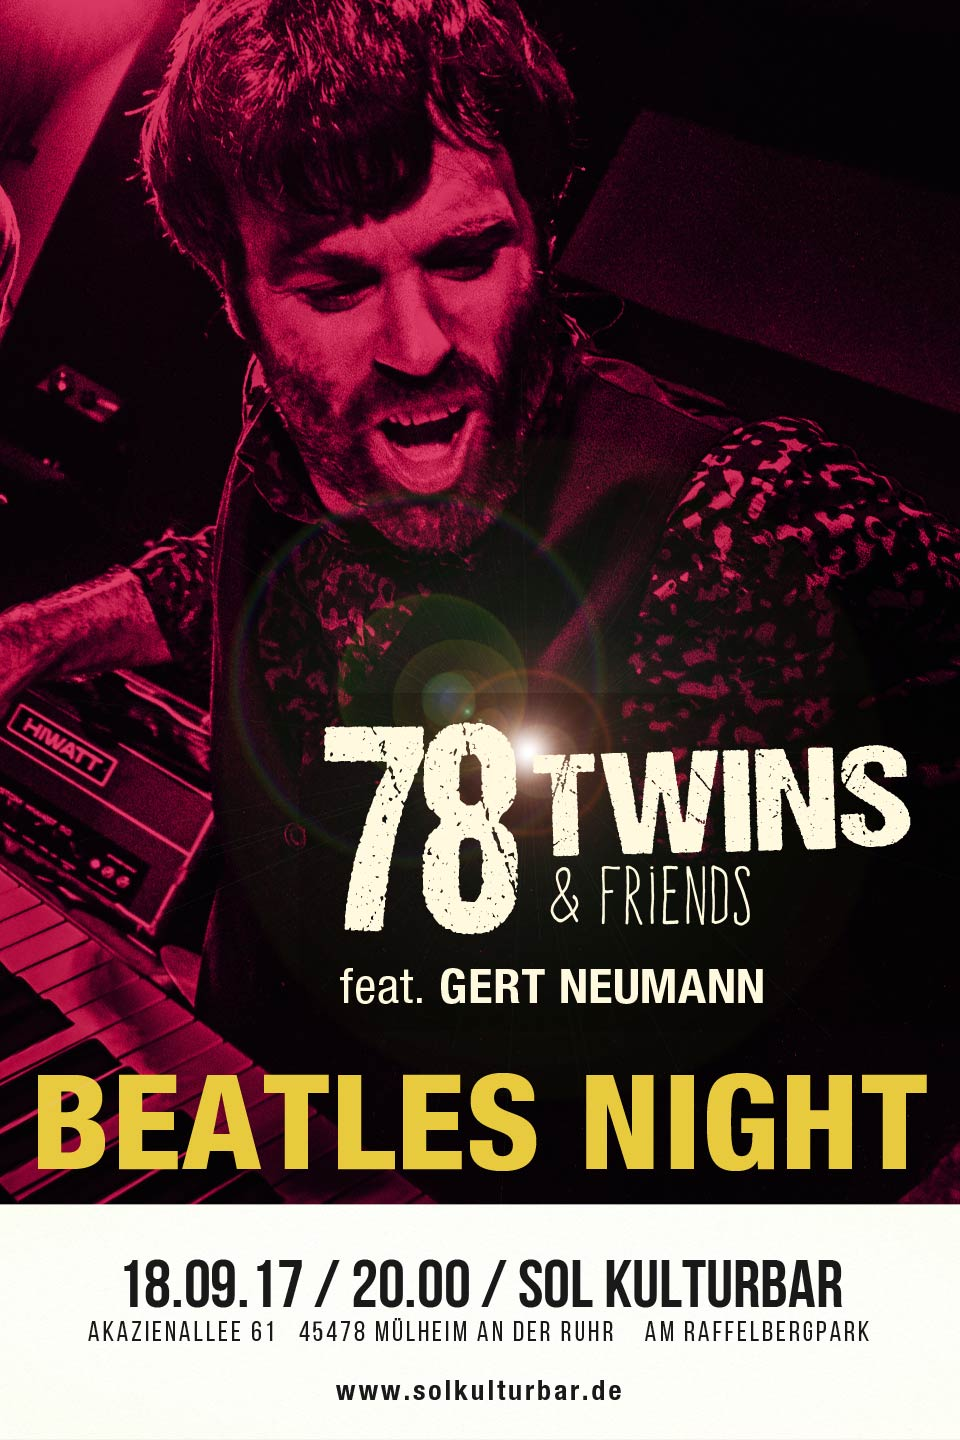 September 2017, 78 Twins & Friends feat. Gert Neumann